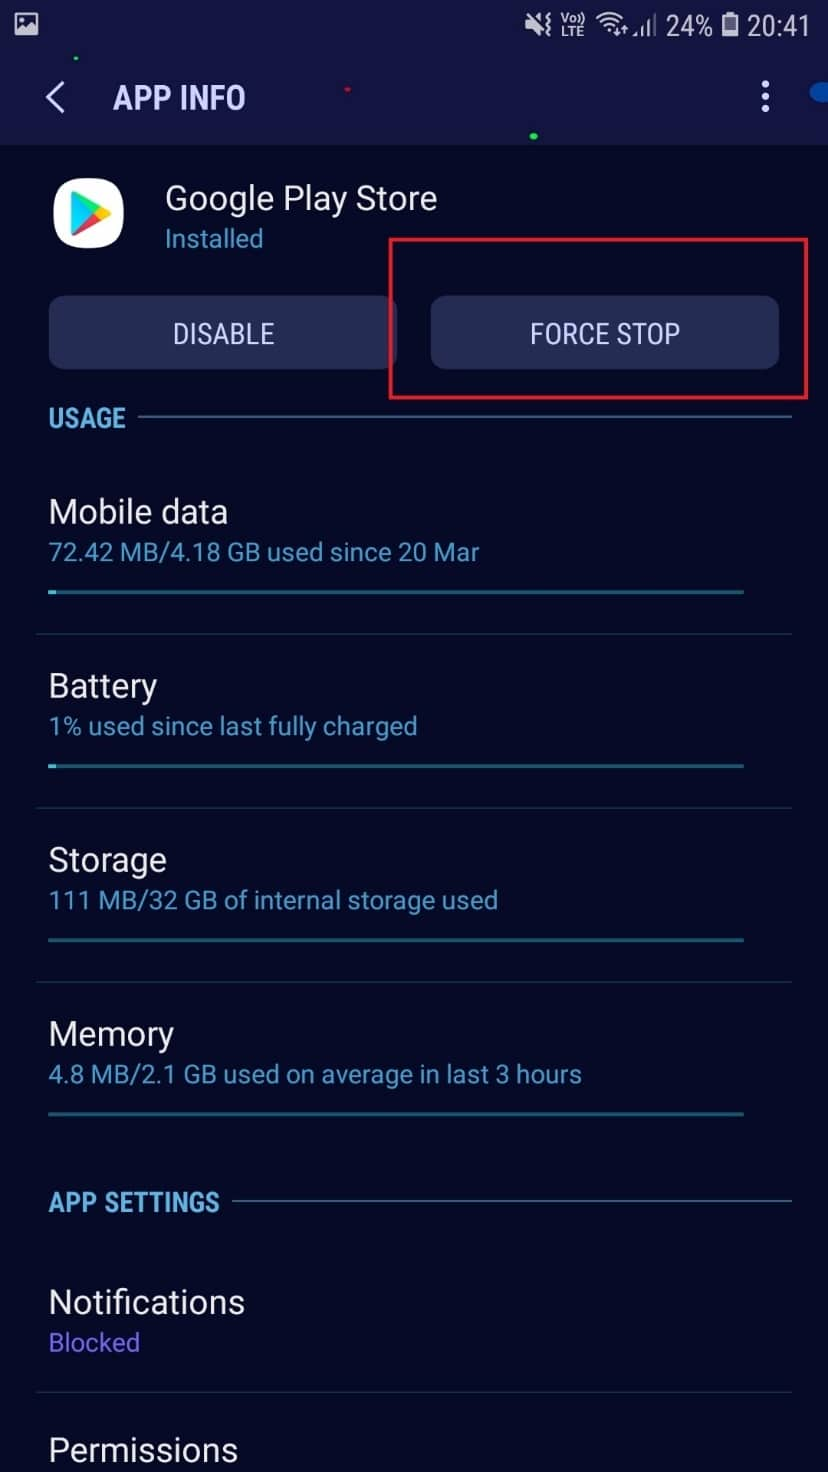 FORCE STOP. How to Fix Play Store DF-DFERH-01 Error